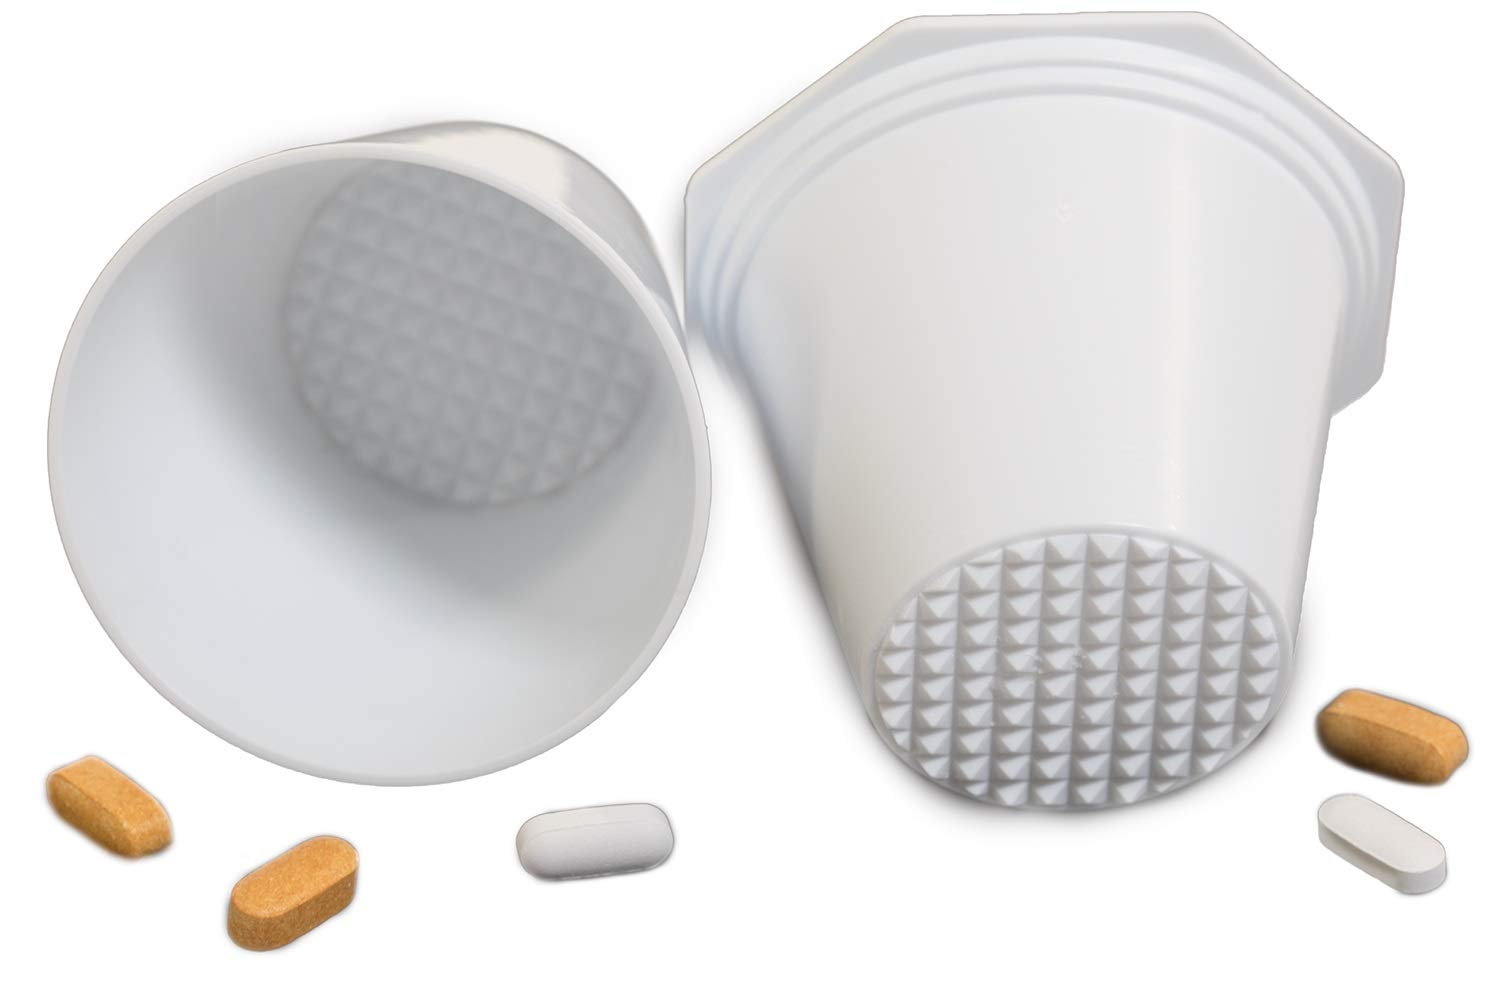 PILL CRUSHER, GRINDER - for Larger Pills, Vitamins or Multiple Tablets - Great for both Humans and Pets | Easy to use and Clean | QUICKLY Add Liquids for drinking - by MegaPill by Mega PillCrusher